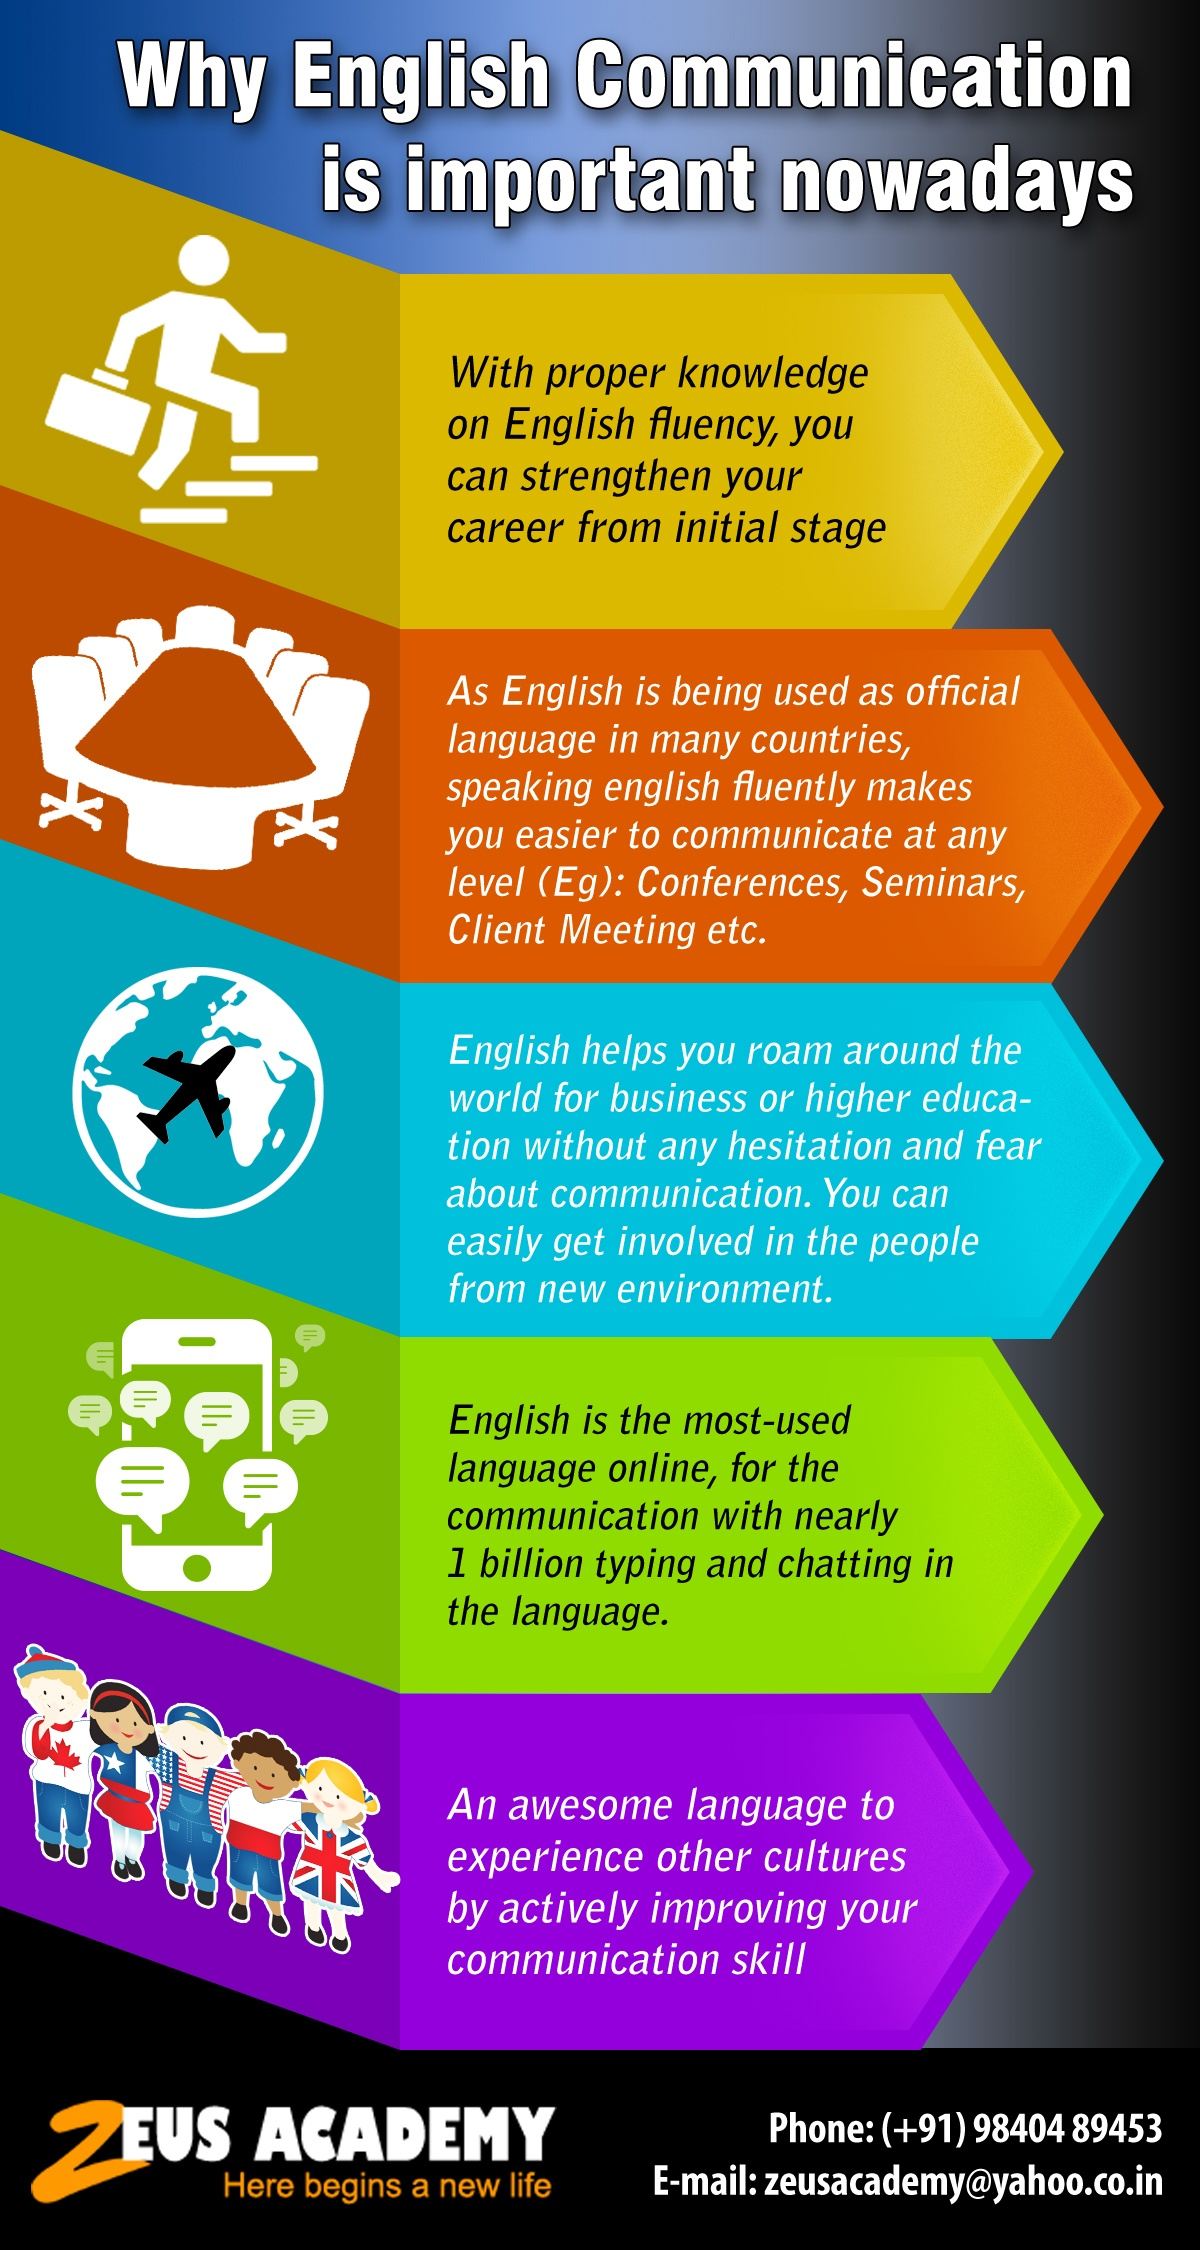 Why English Communication Is Important Nowadays Infographic